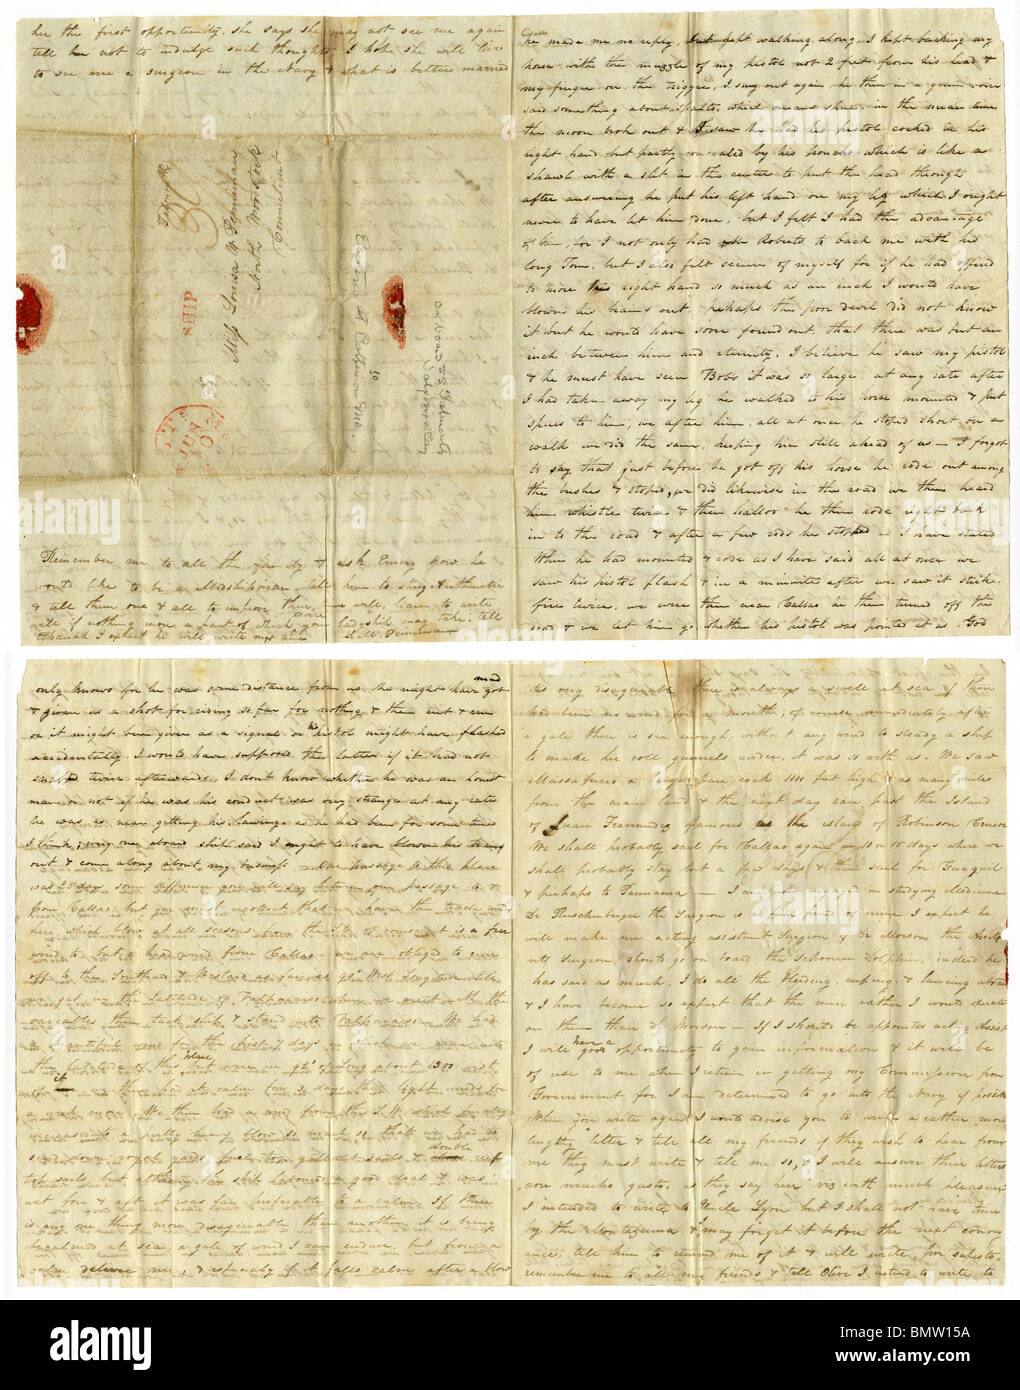 1832 stampless letter written 'on board the U.S. Ship Falmouth, Valparaiso Bay, February 19, 1832.' - Stock Image